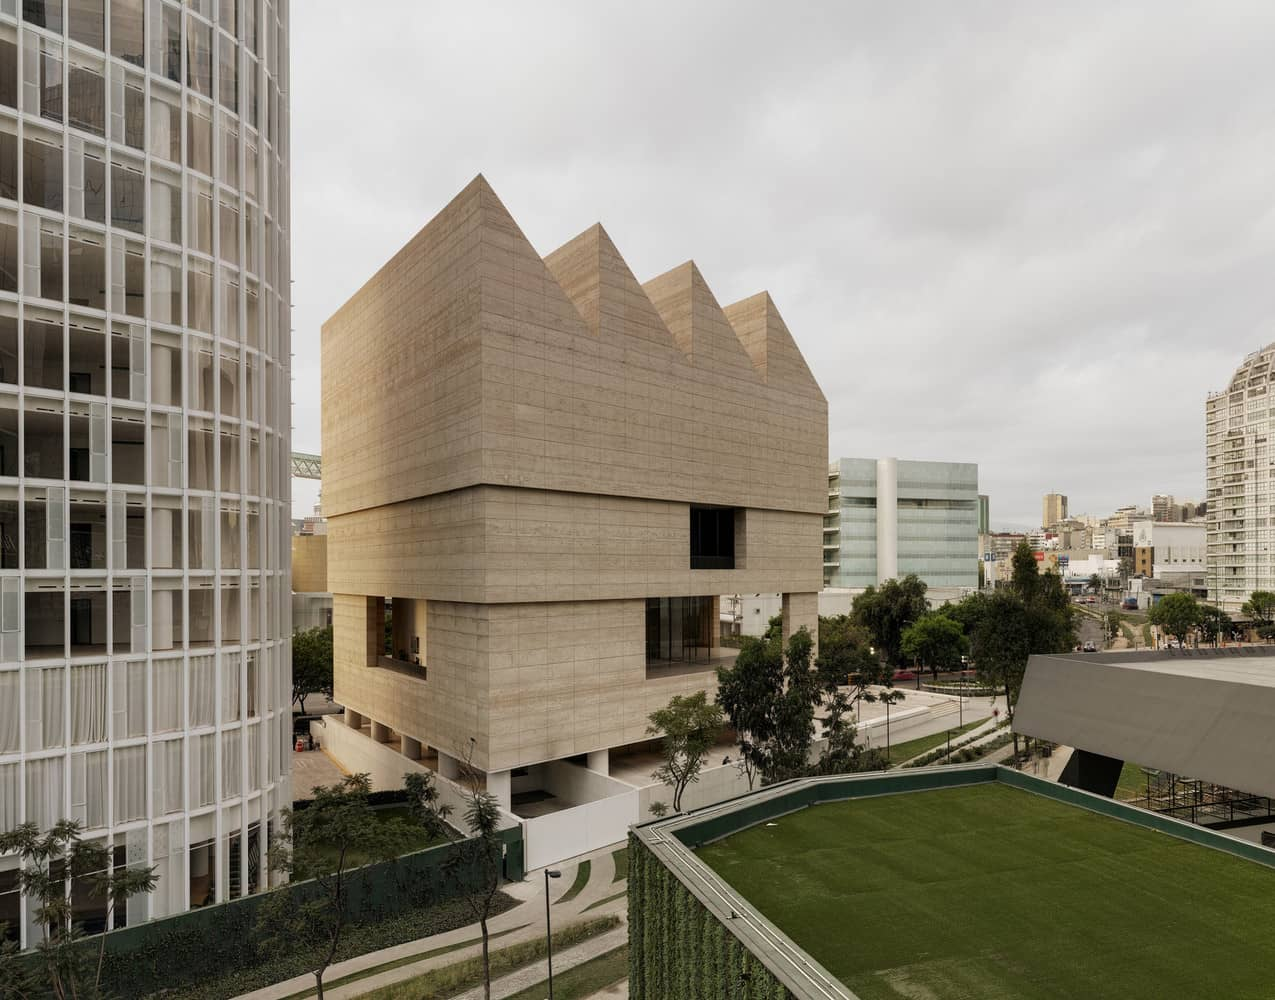 Museo Jumex (a private art collection based in Mexico City, Mexico) / David Chipperfield. Image © Simon Menges